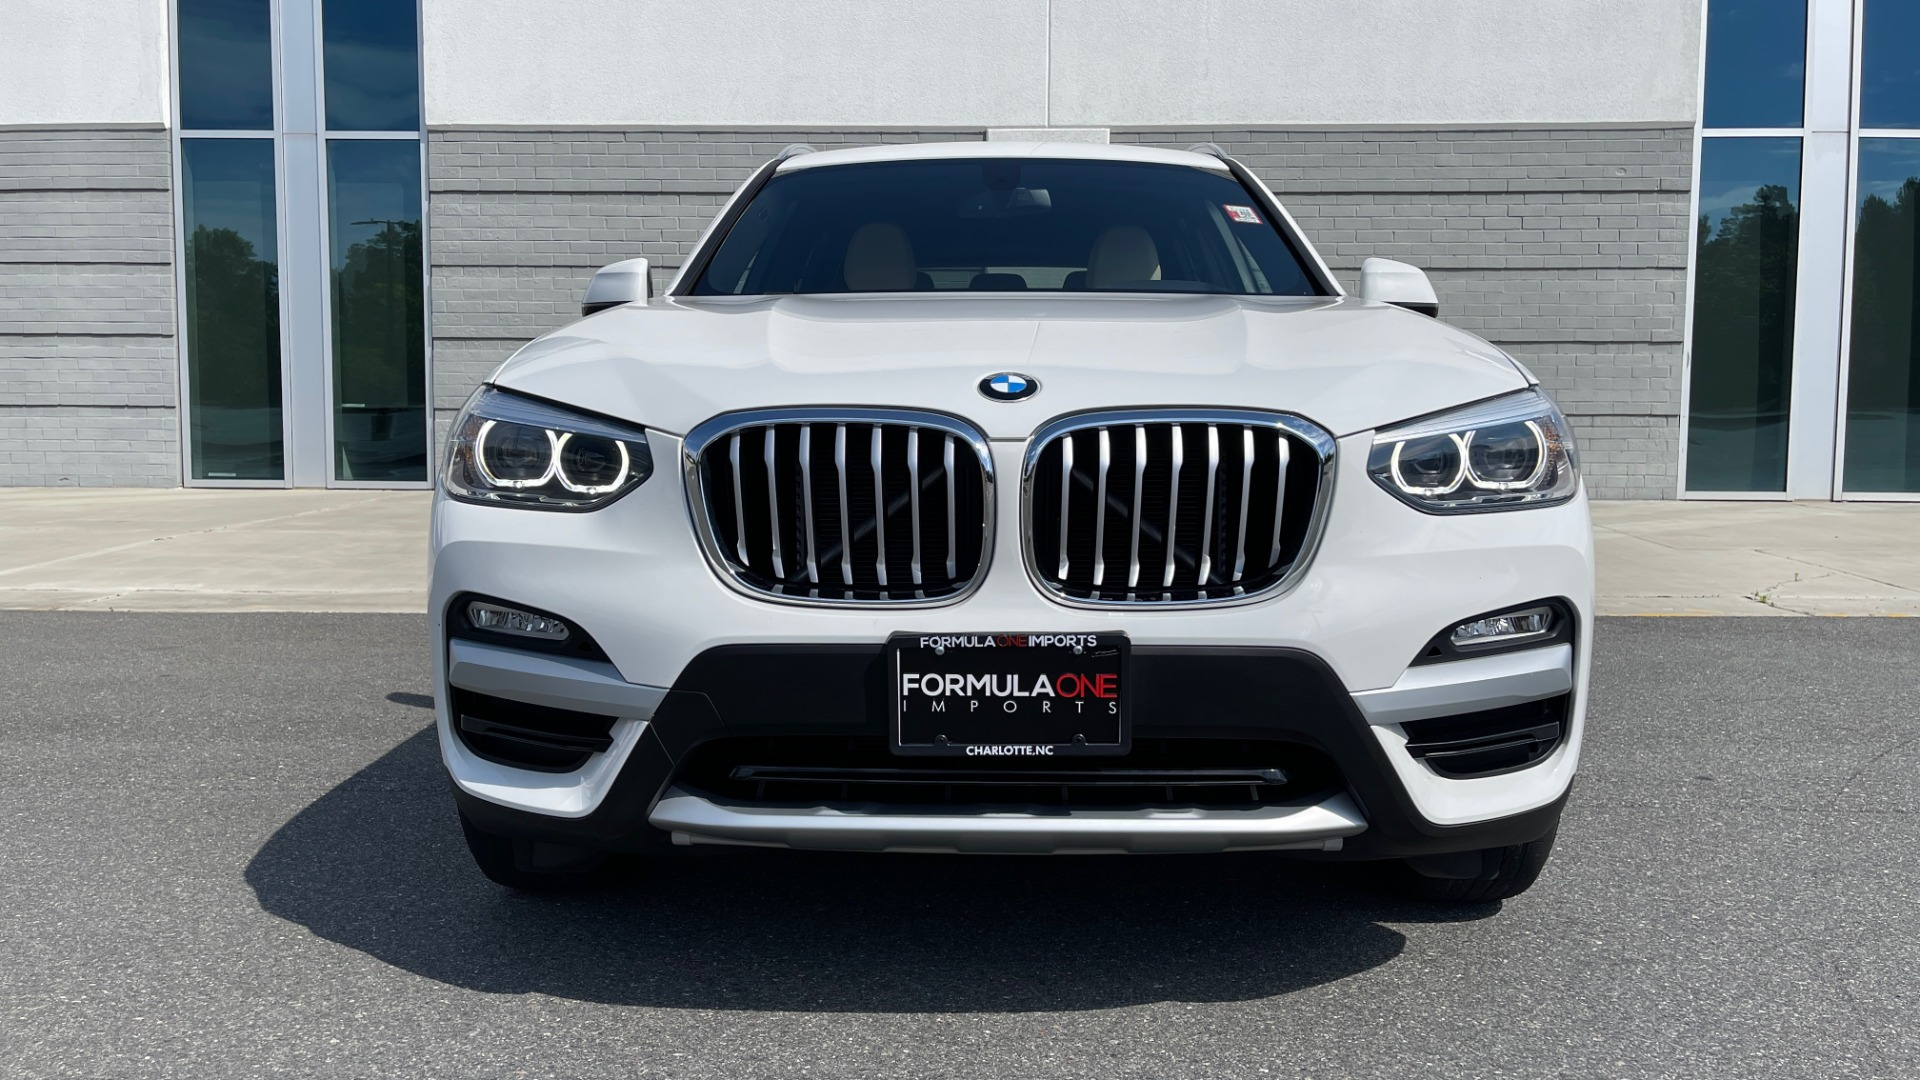 Used 2018 BMW X3 XDRIVE30I CONVENIENCE PKG / HEATED FRONT SEATS / REARVIEW for sale $36,595 at Formula Imports in Charlotte NC 28227 11